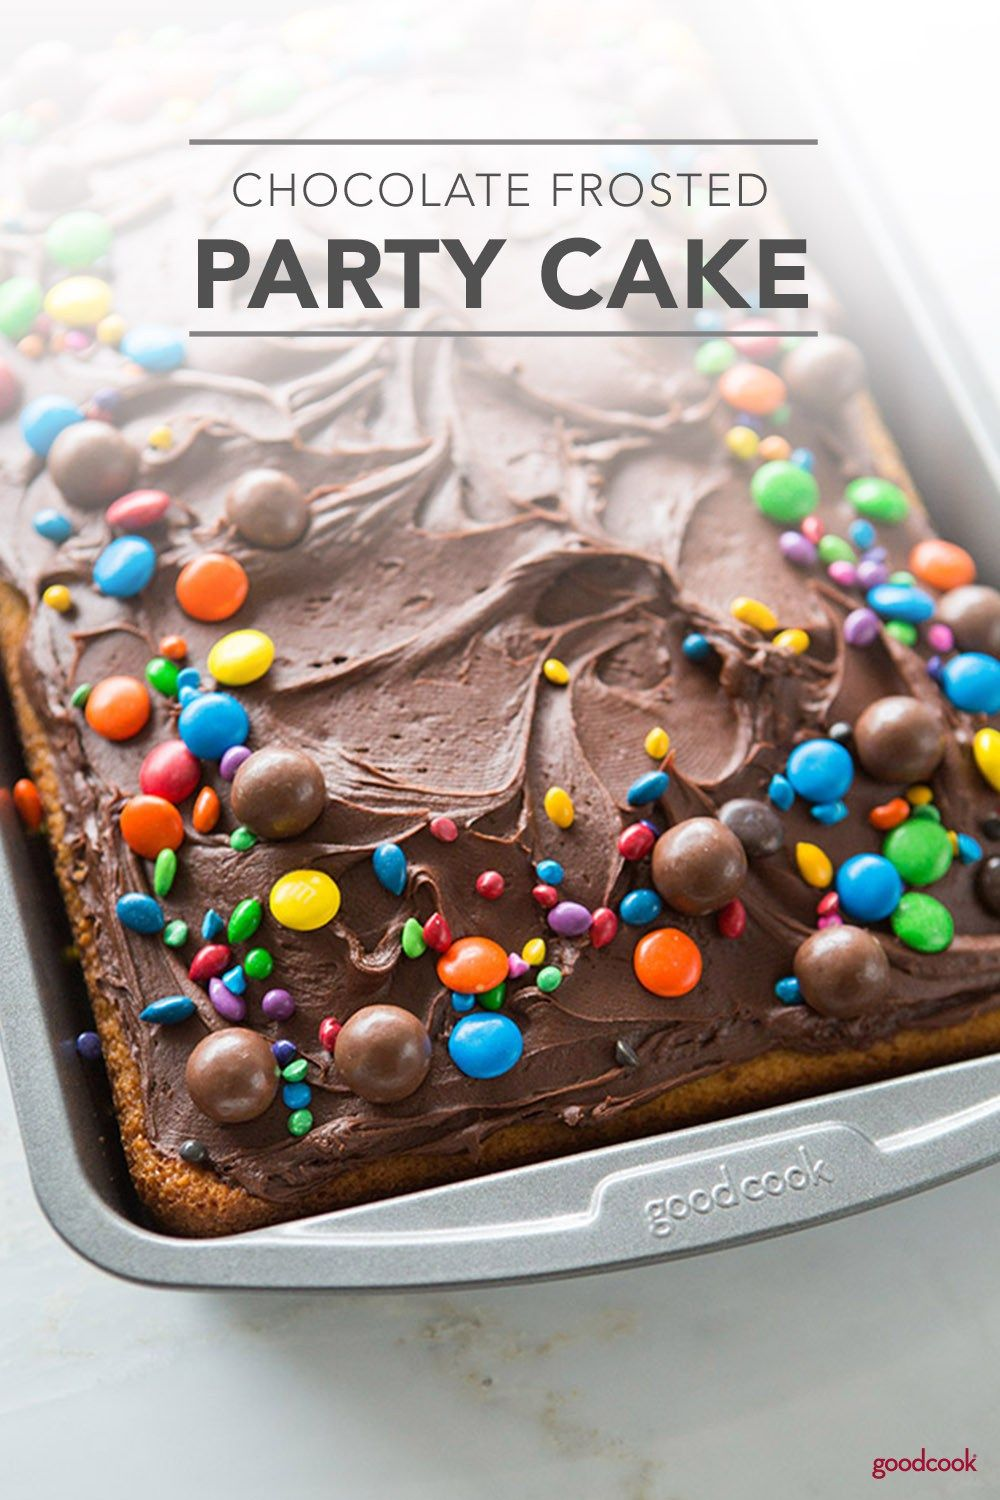 A chocolate lovers favorite, this Chocolate Frosted Party Cake calls for a festive celebration. Perfect for birthdays, anniversaries, and other special occasions, this crowd-pleasing Chocolate Frosted Party Cake is a simple and delicious way to celebrate.